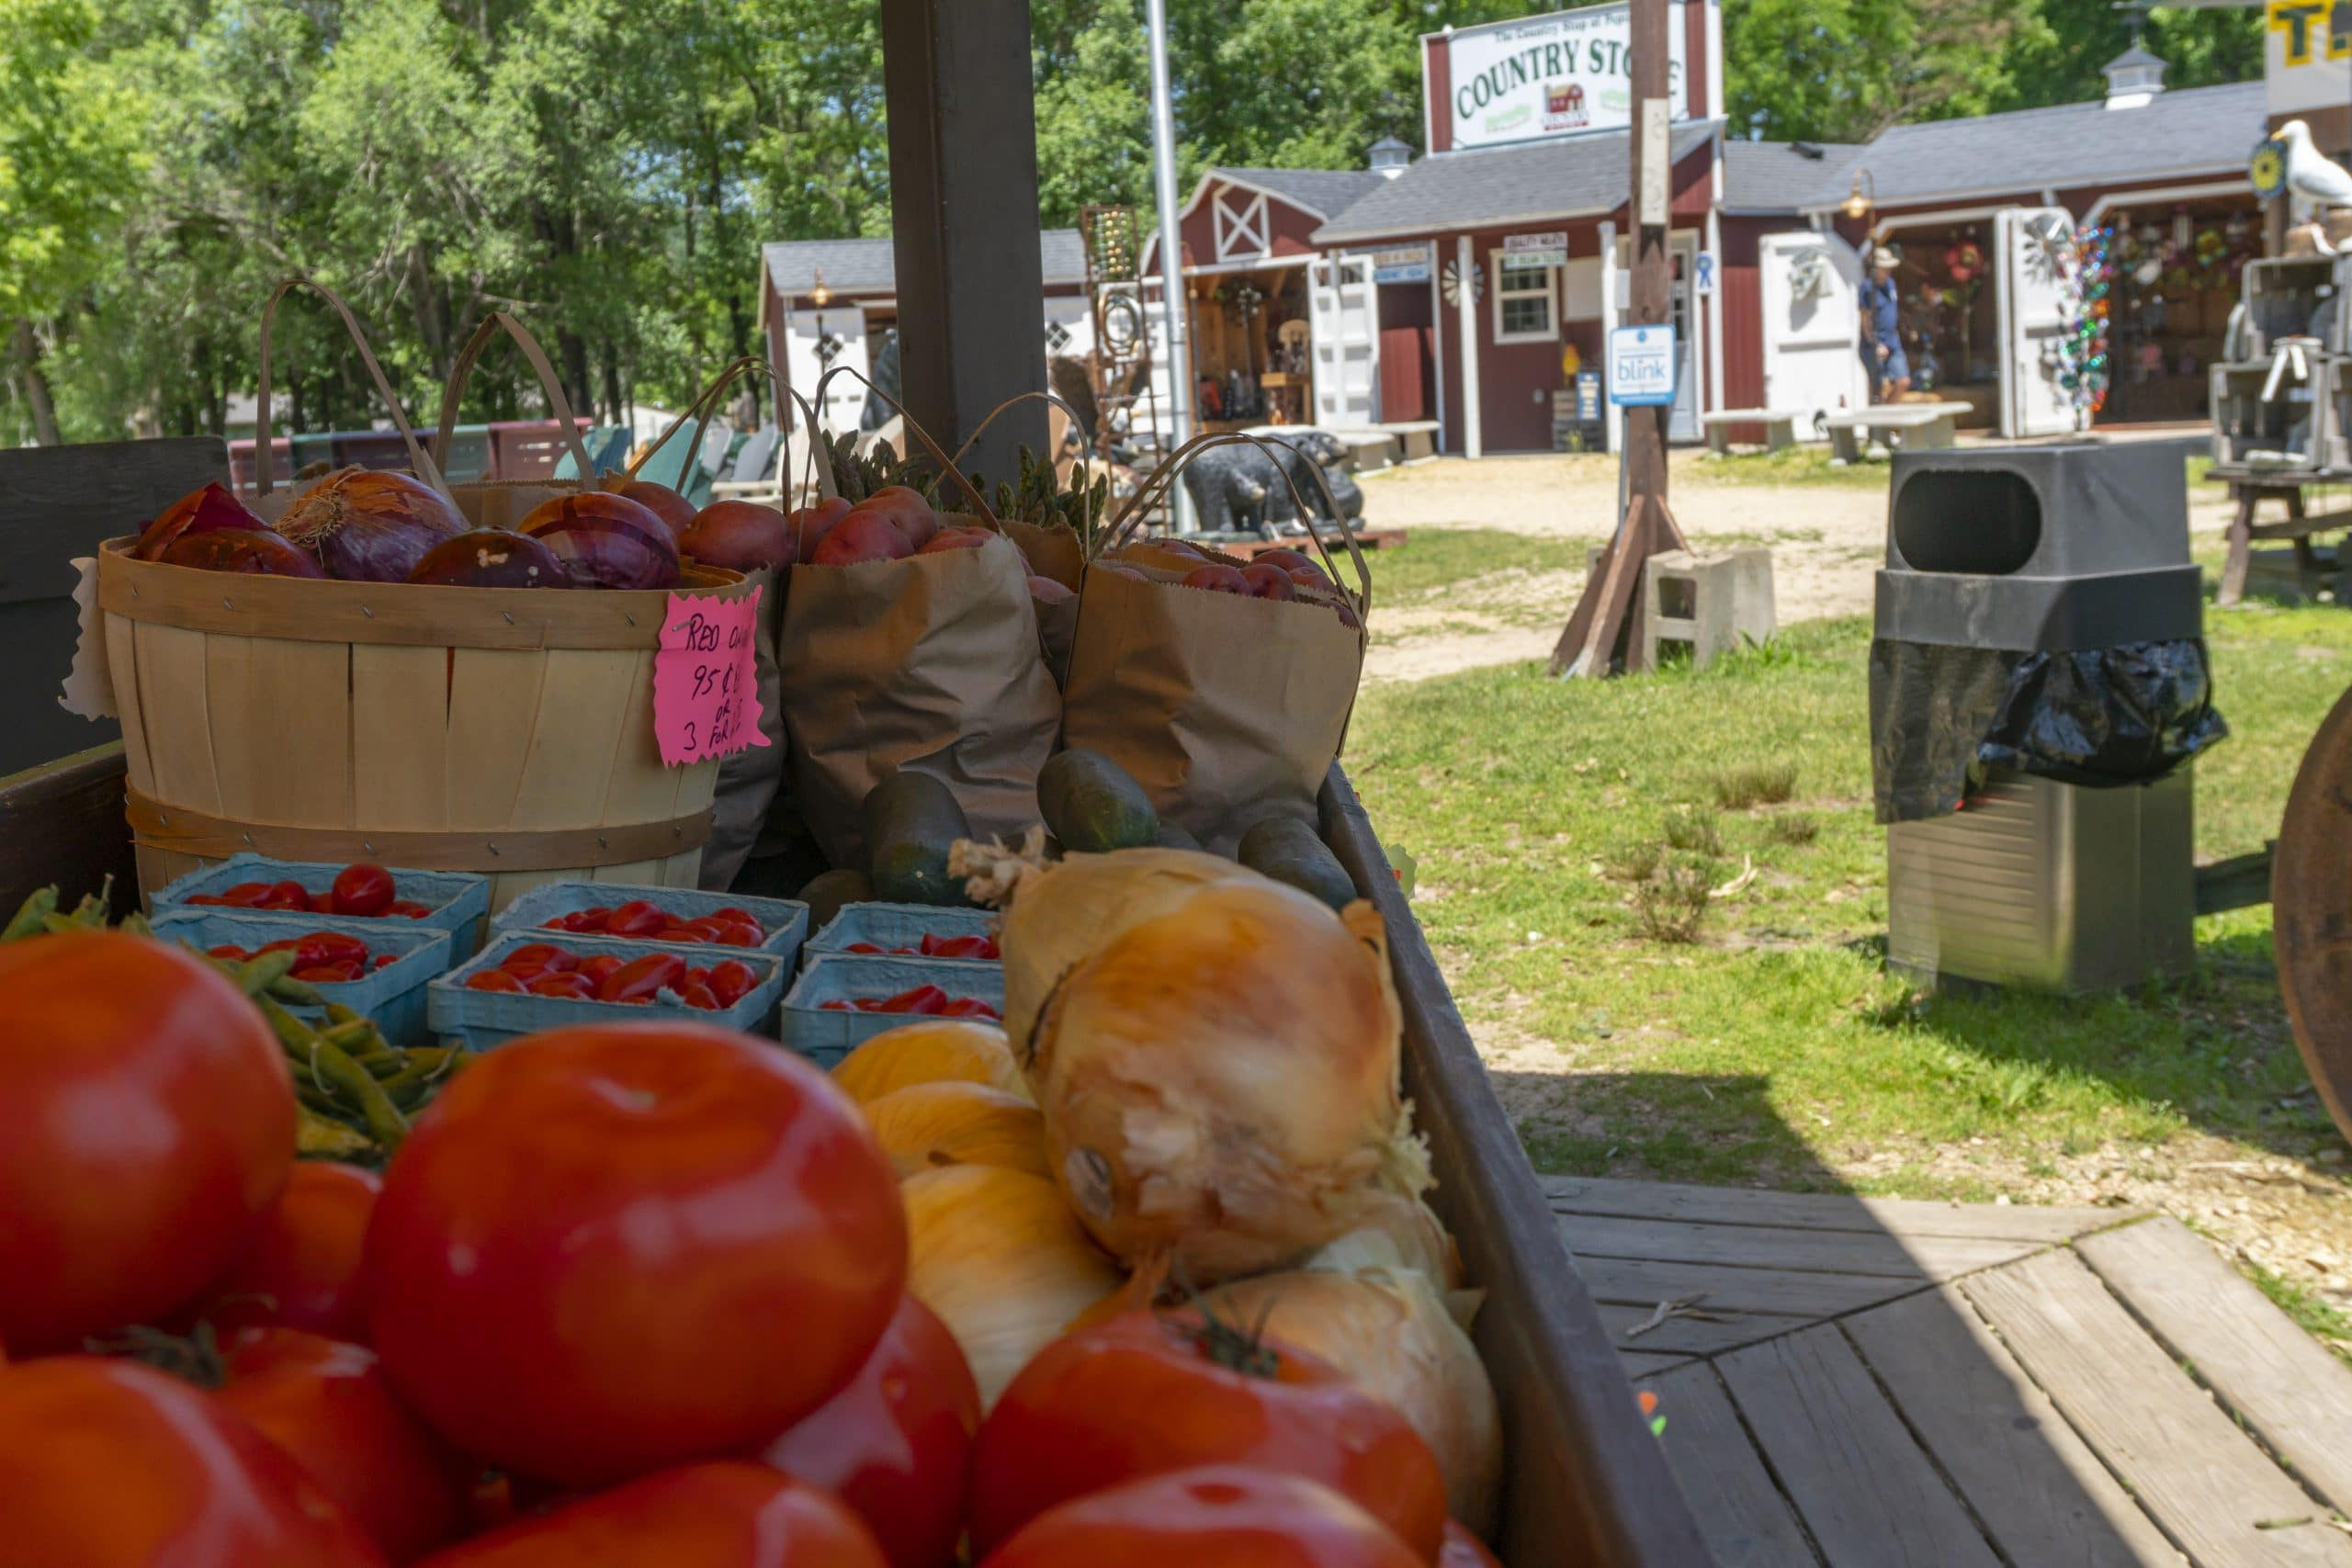 Produce for Sale at Pepin Country Store